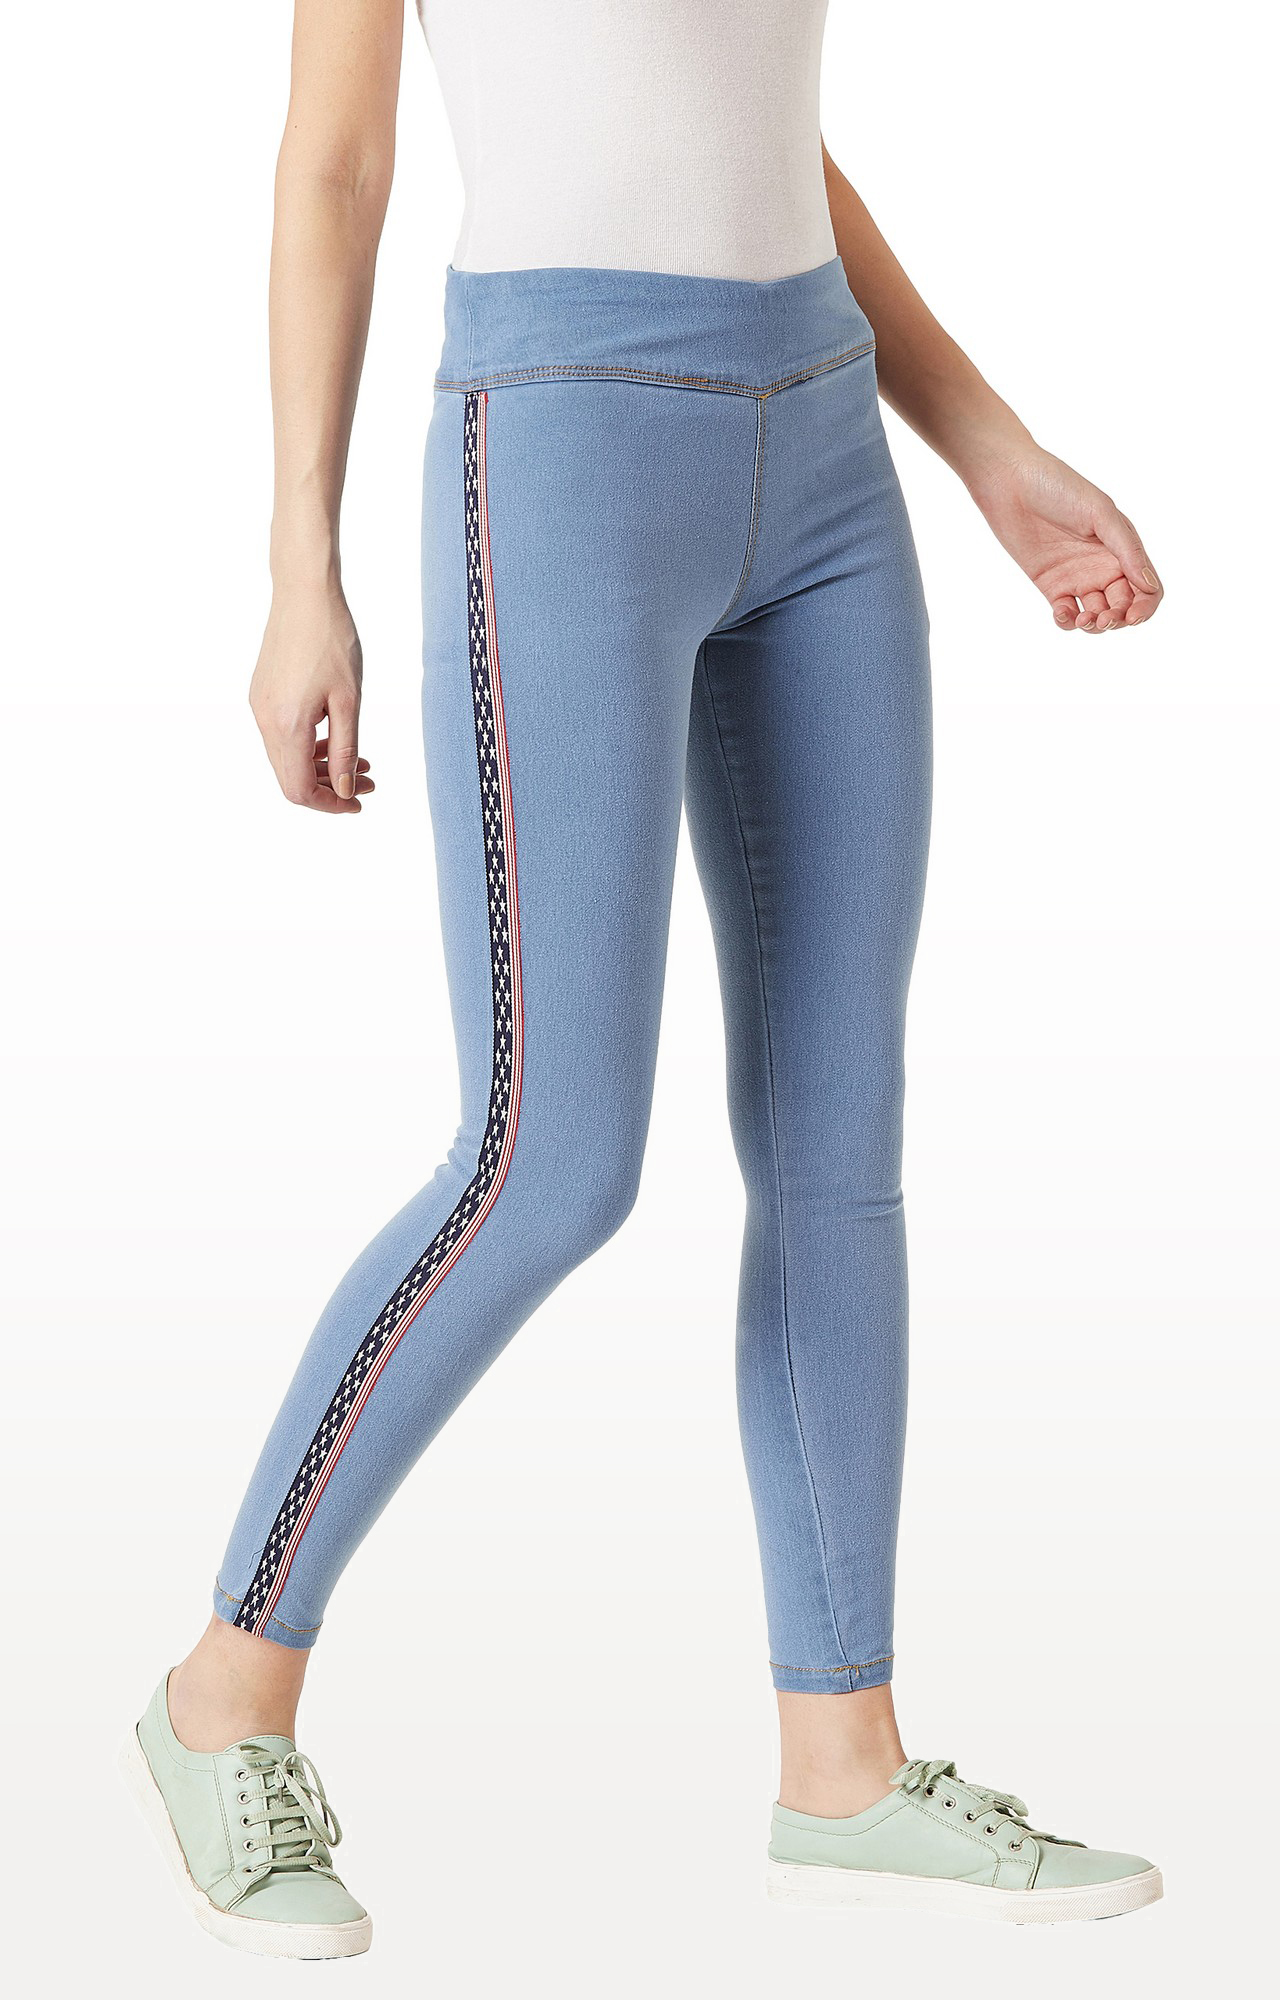 MISS CHASE   Light Blue Solid High Rise Clean Look Regular Length Twill Tape Detailing Stretchable Denim Jeggings